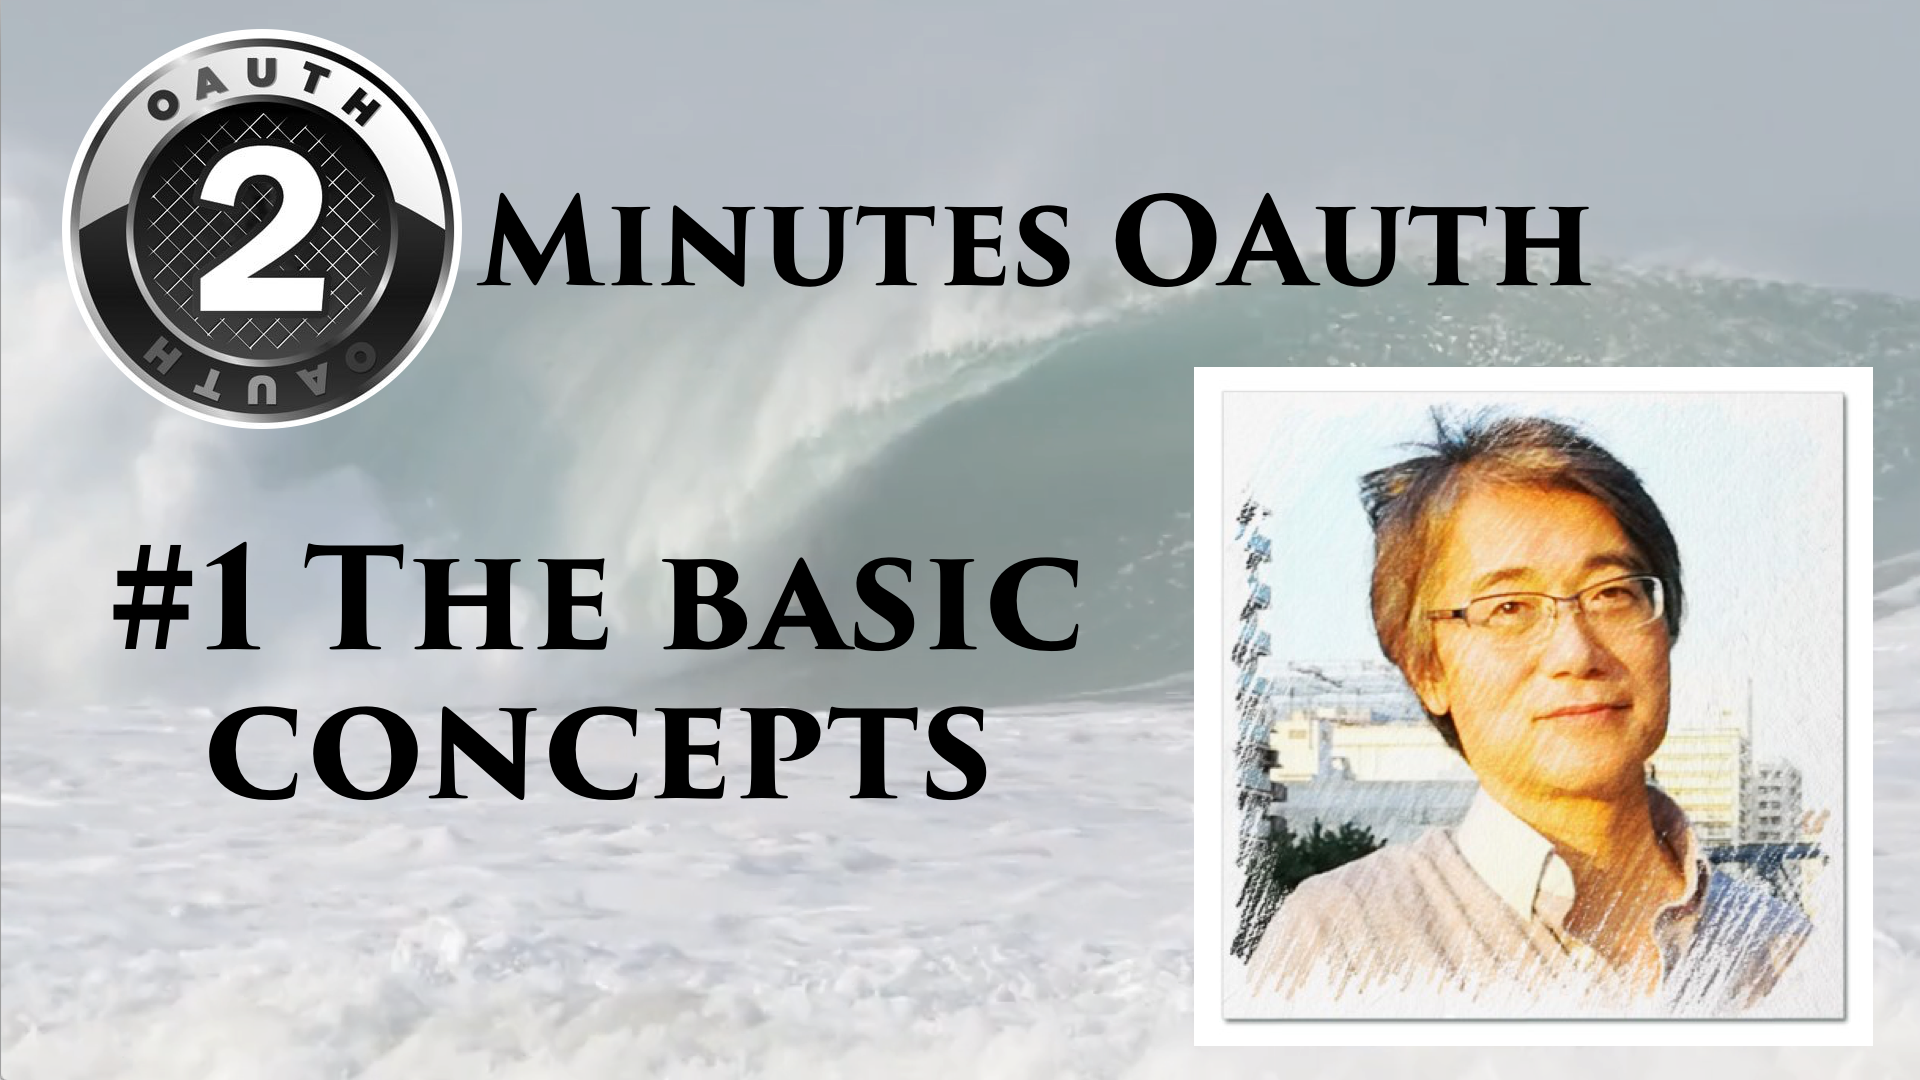 [2 minutes OAuth] #1 Basic Concepts